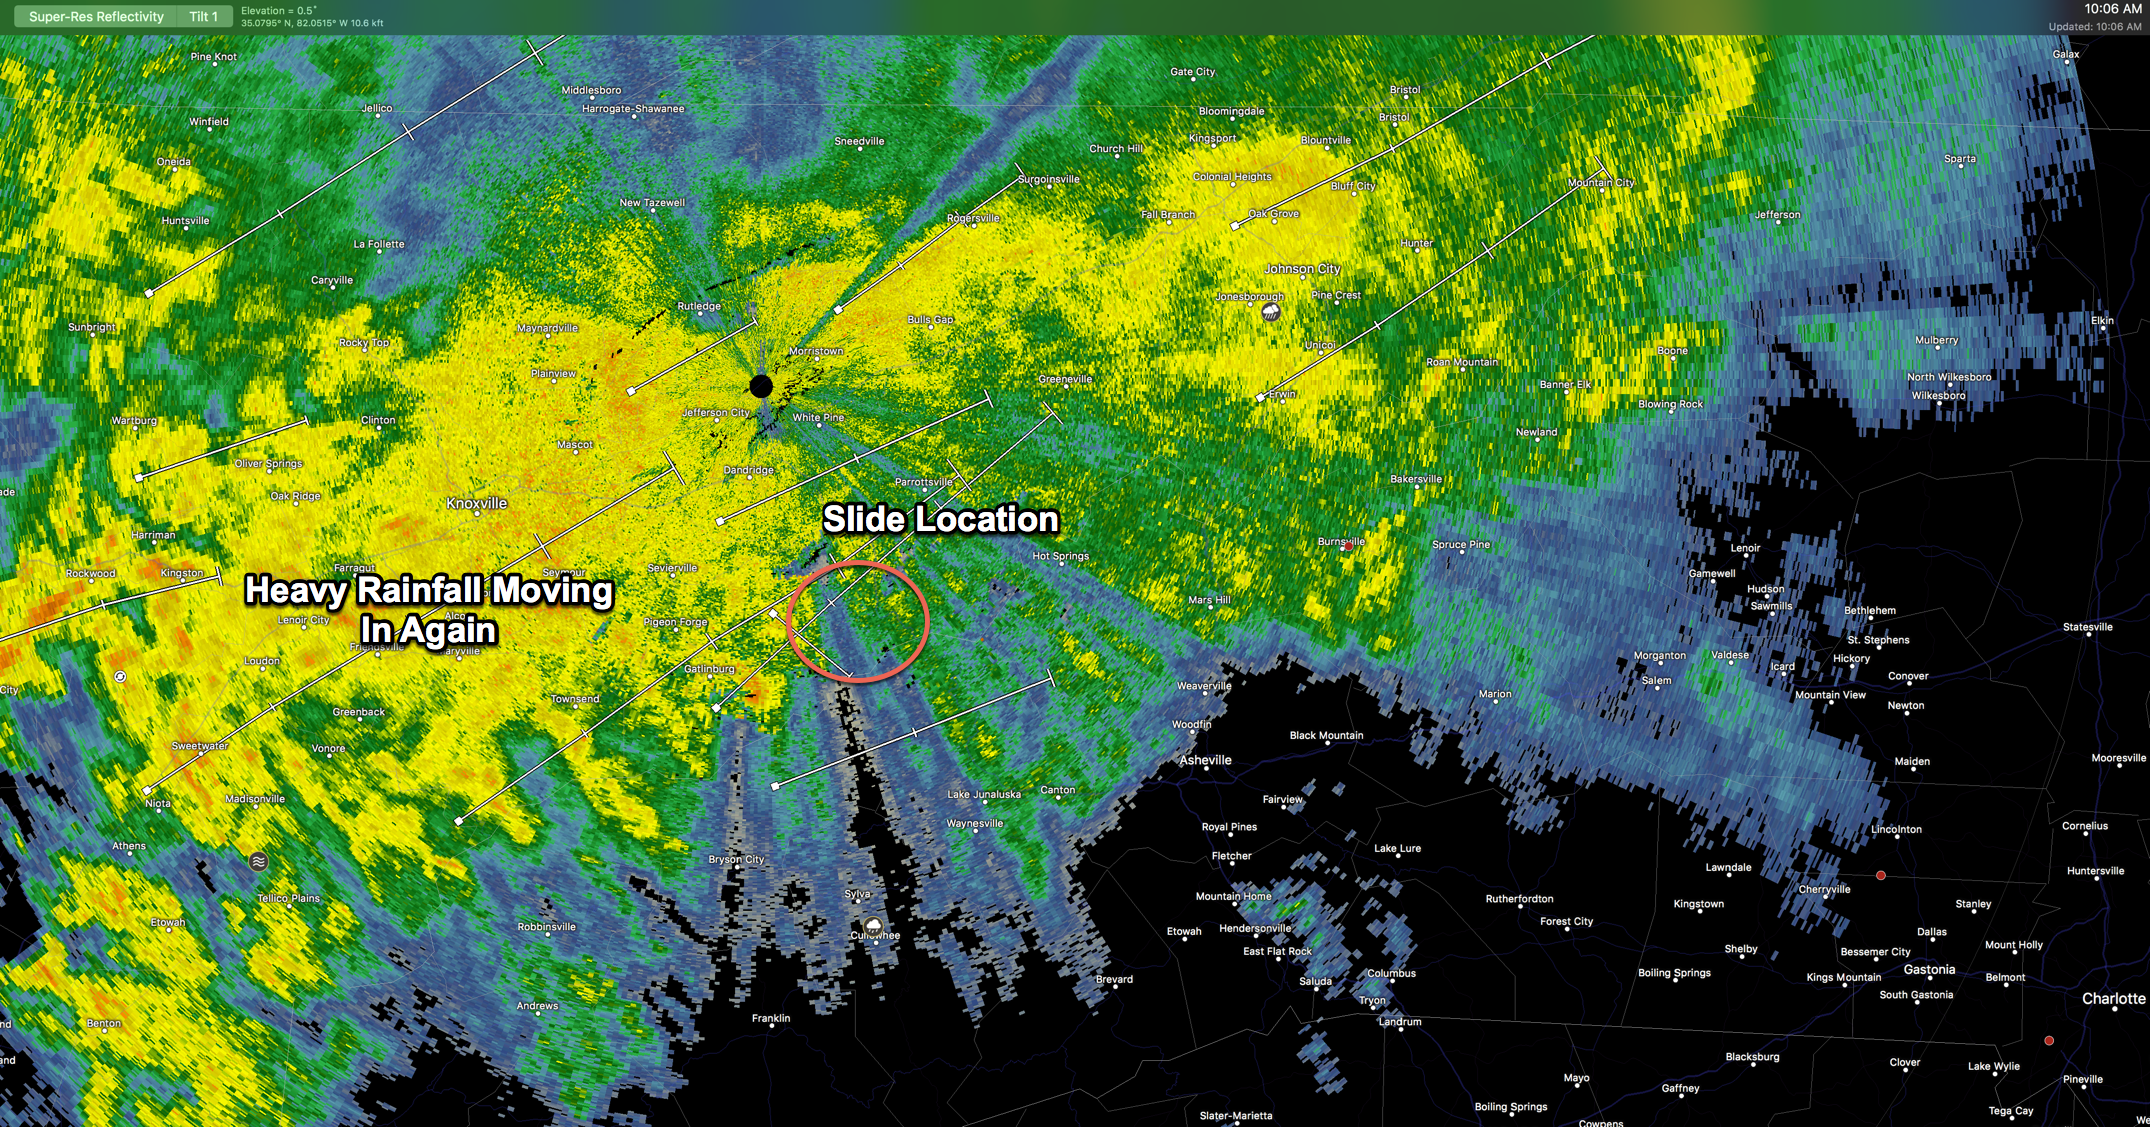 Heavy rainfall moving into slide area again